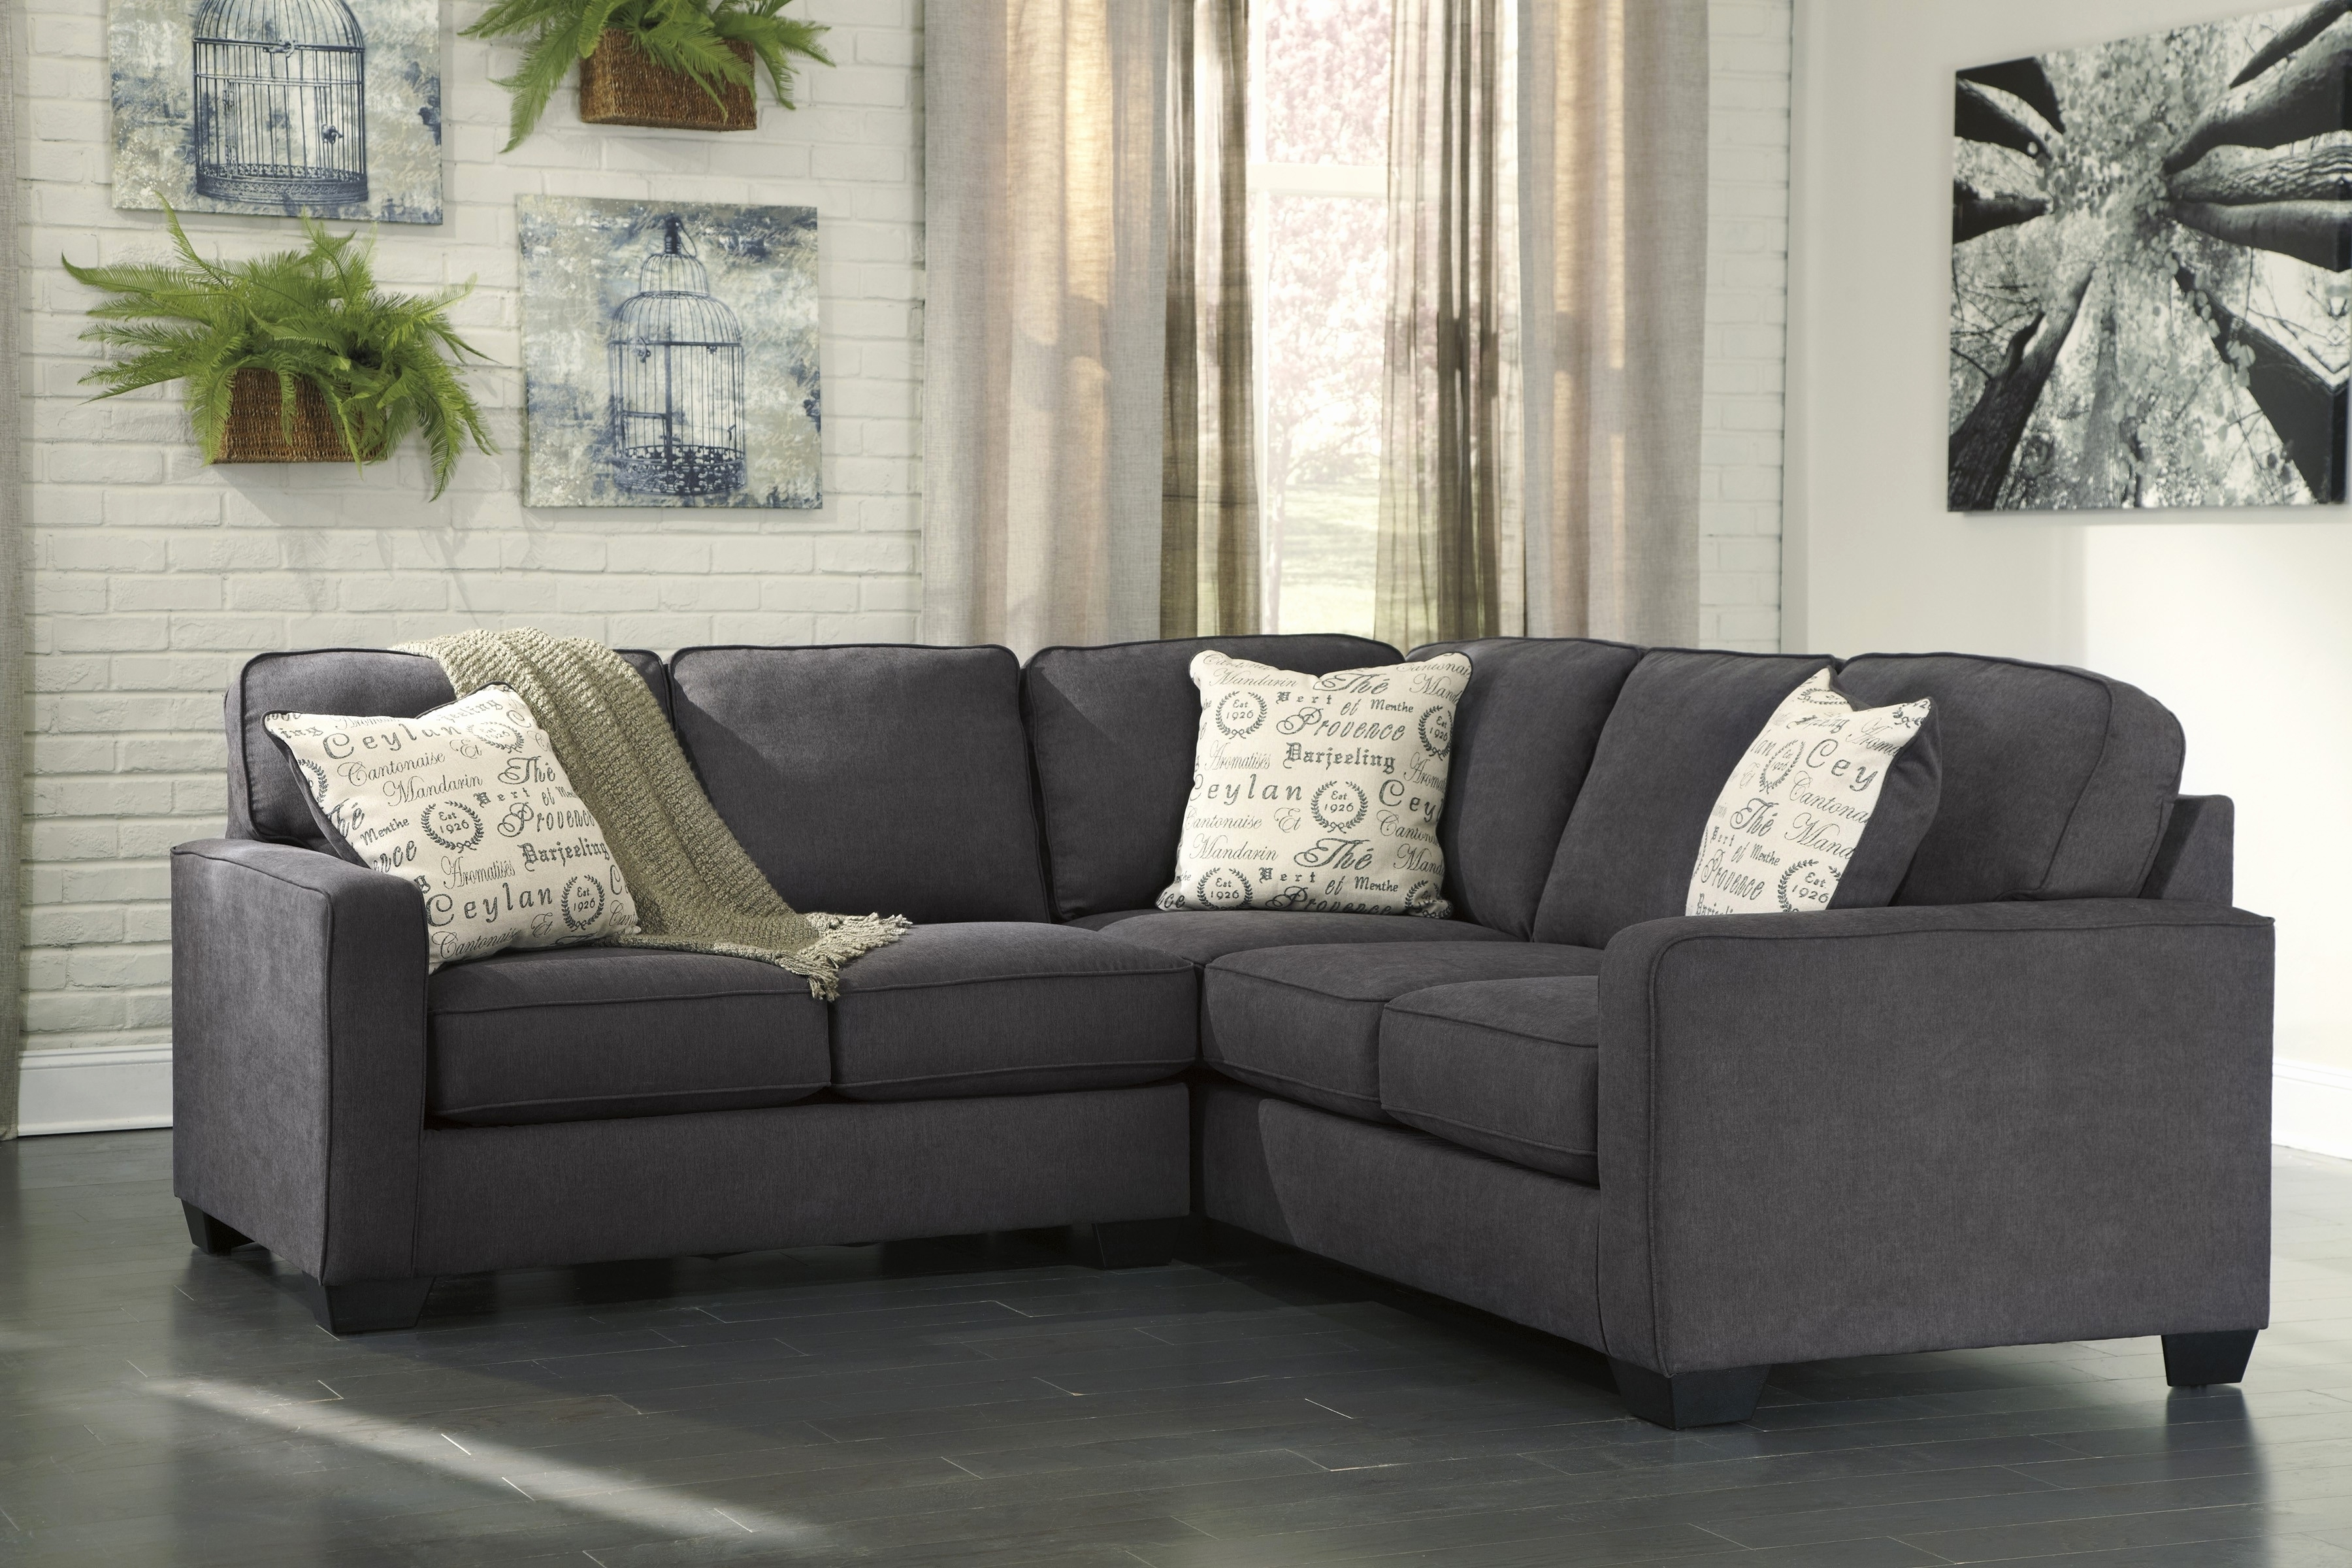 Awesome Couch With 2 Chaise Lounges 2018 – Couches And Sofas Ideas For Most Popular Sectional Sofas With 2 Chaises (View 16 of 20)